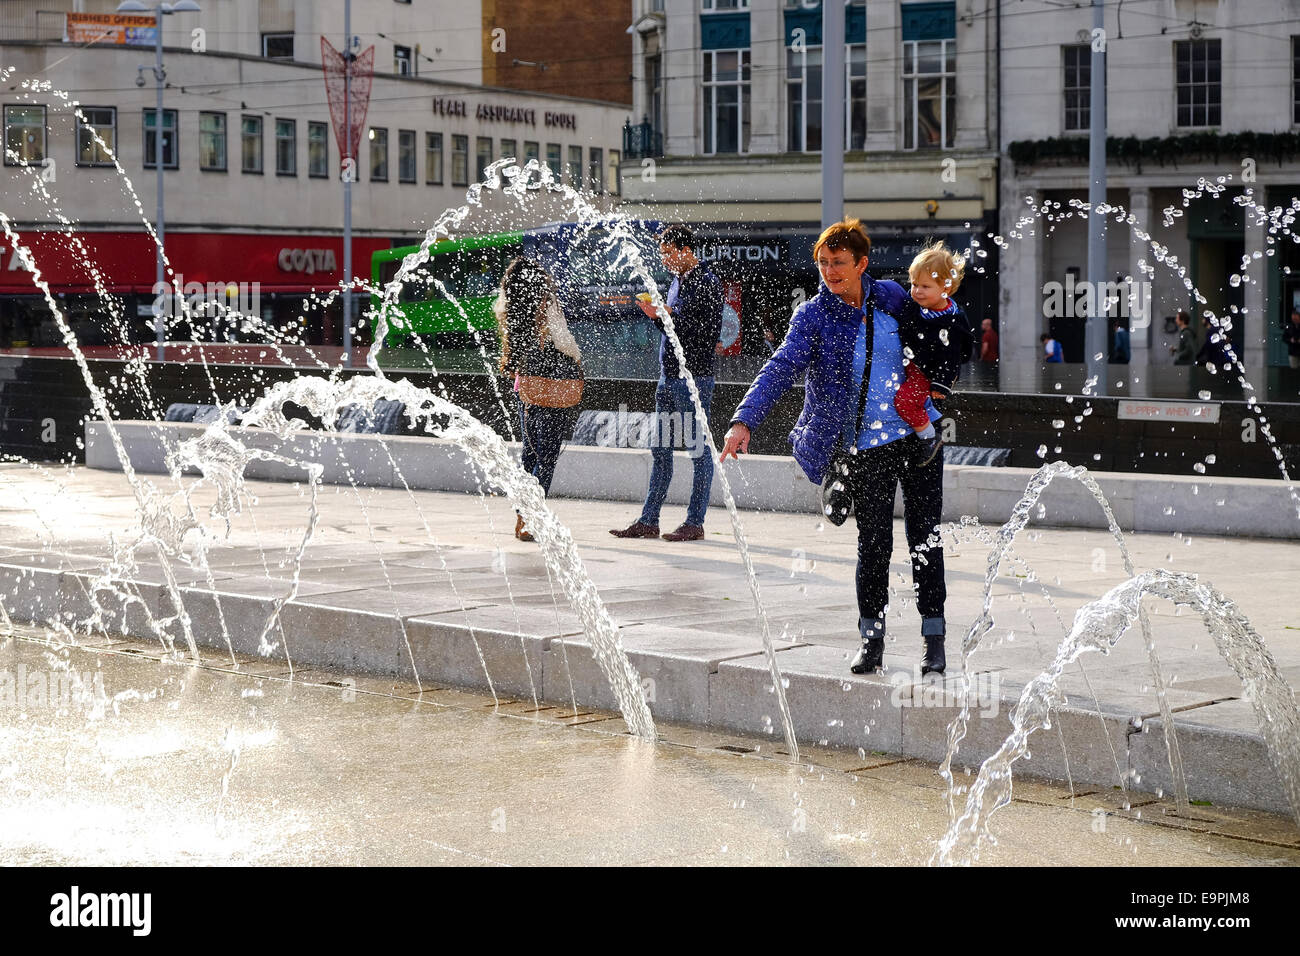 Nottingham, UK. 31st October, 2014. UK weather. Set to be the warmest Halloween on record. People play in the fountains - Stock Image